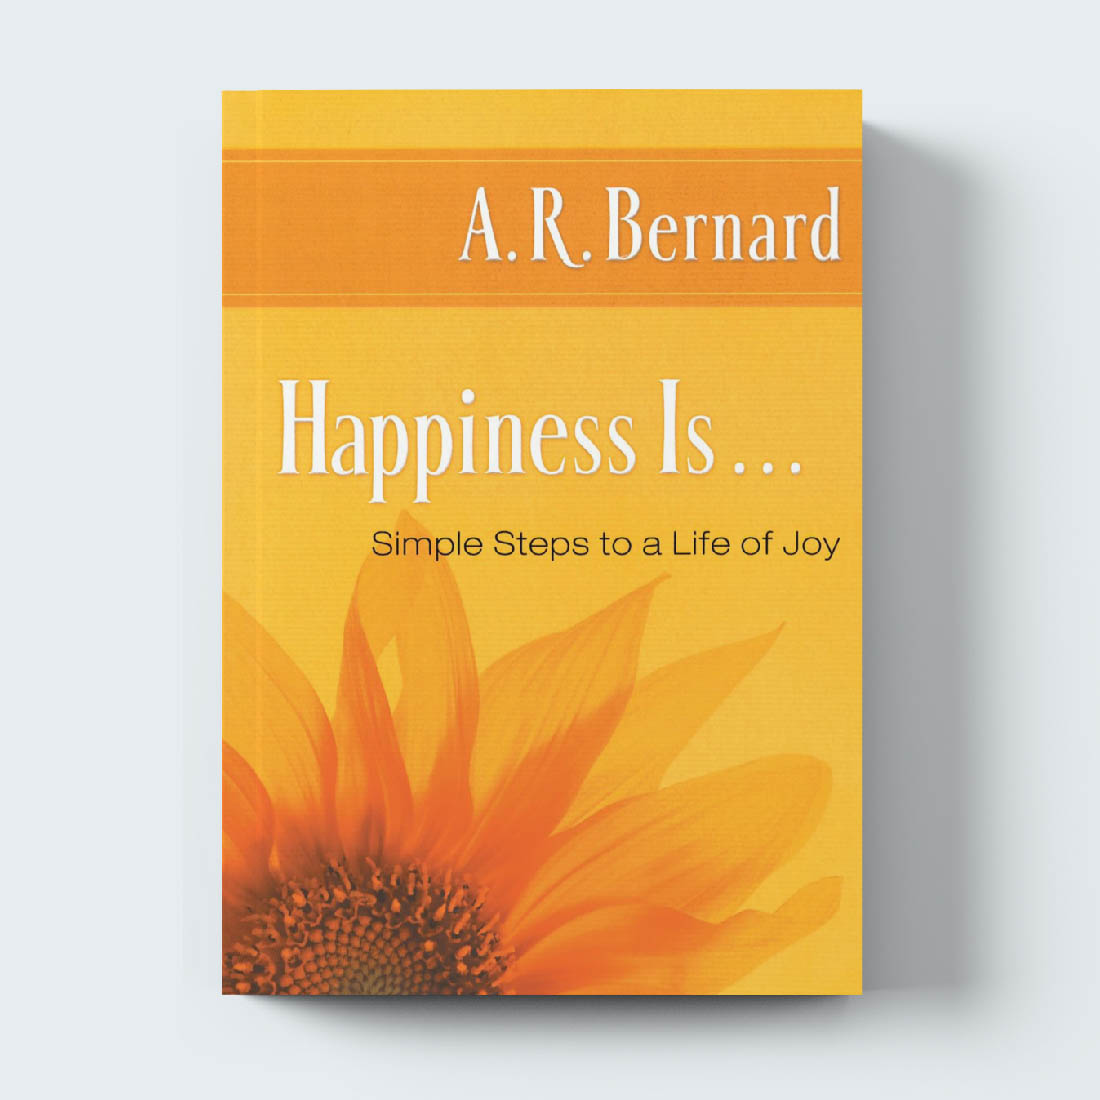 AR_Bernard_Reading_List_Happiness_Is.jpg